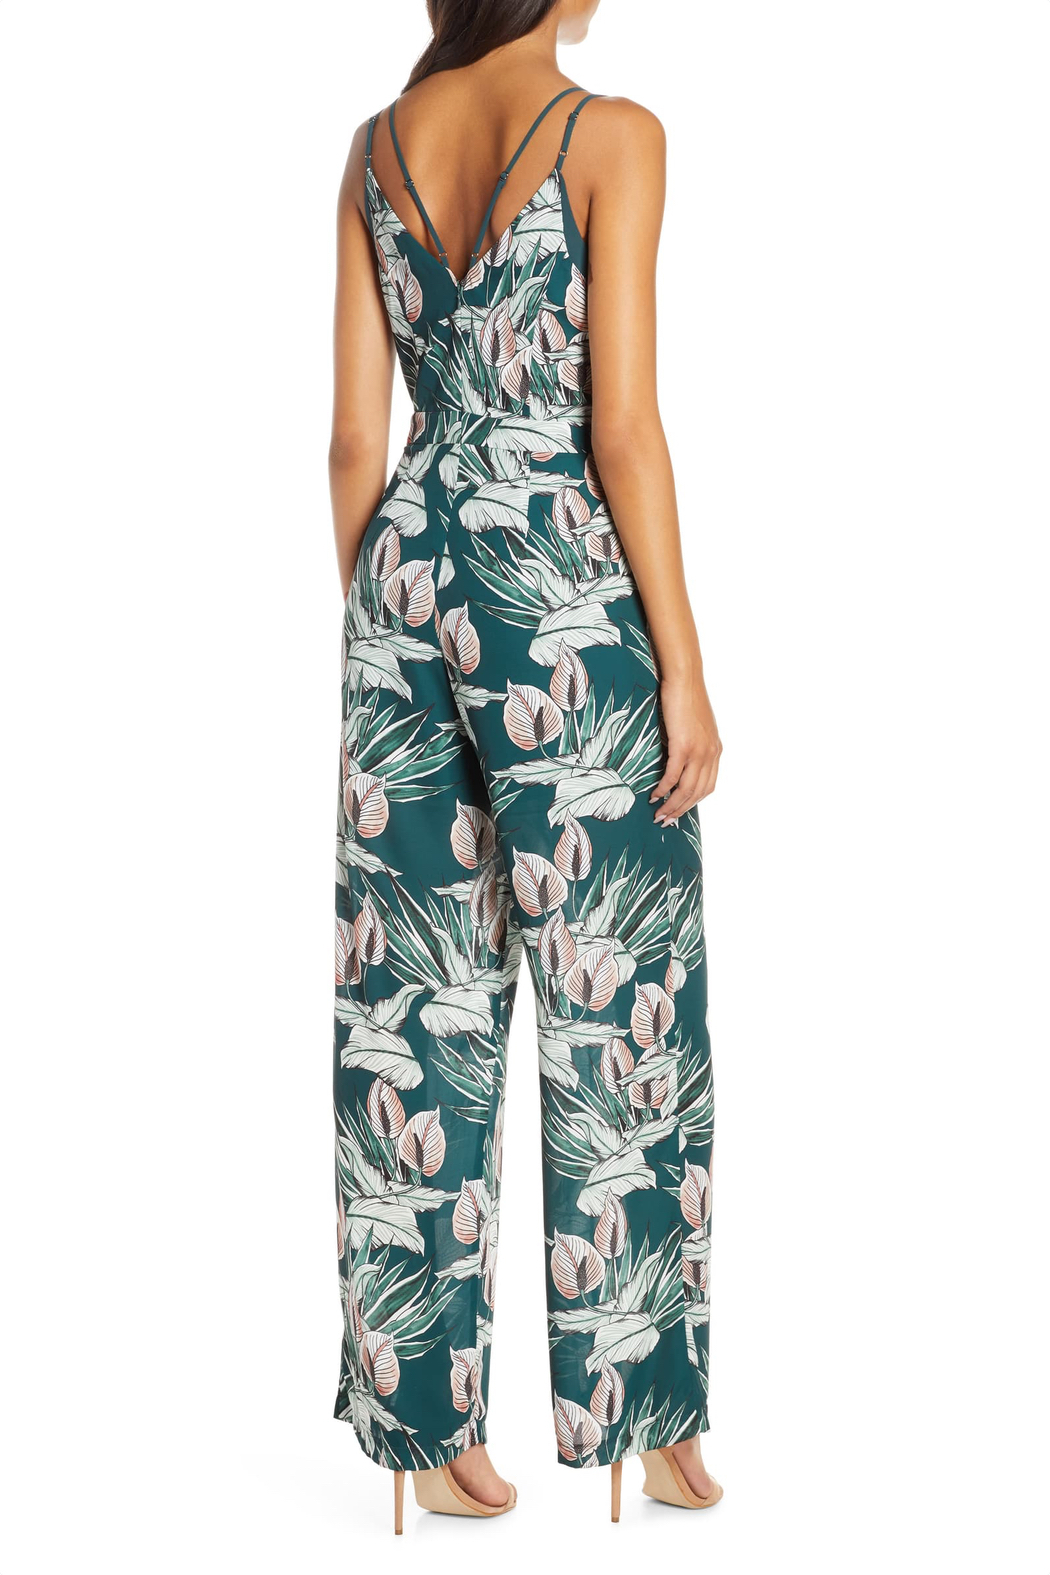 Adelyn Rae Nissa Tropical Jumpsuit - Front Full Image